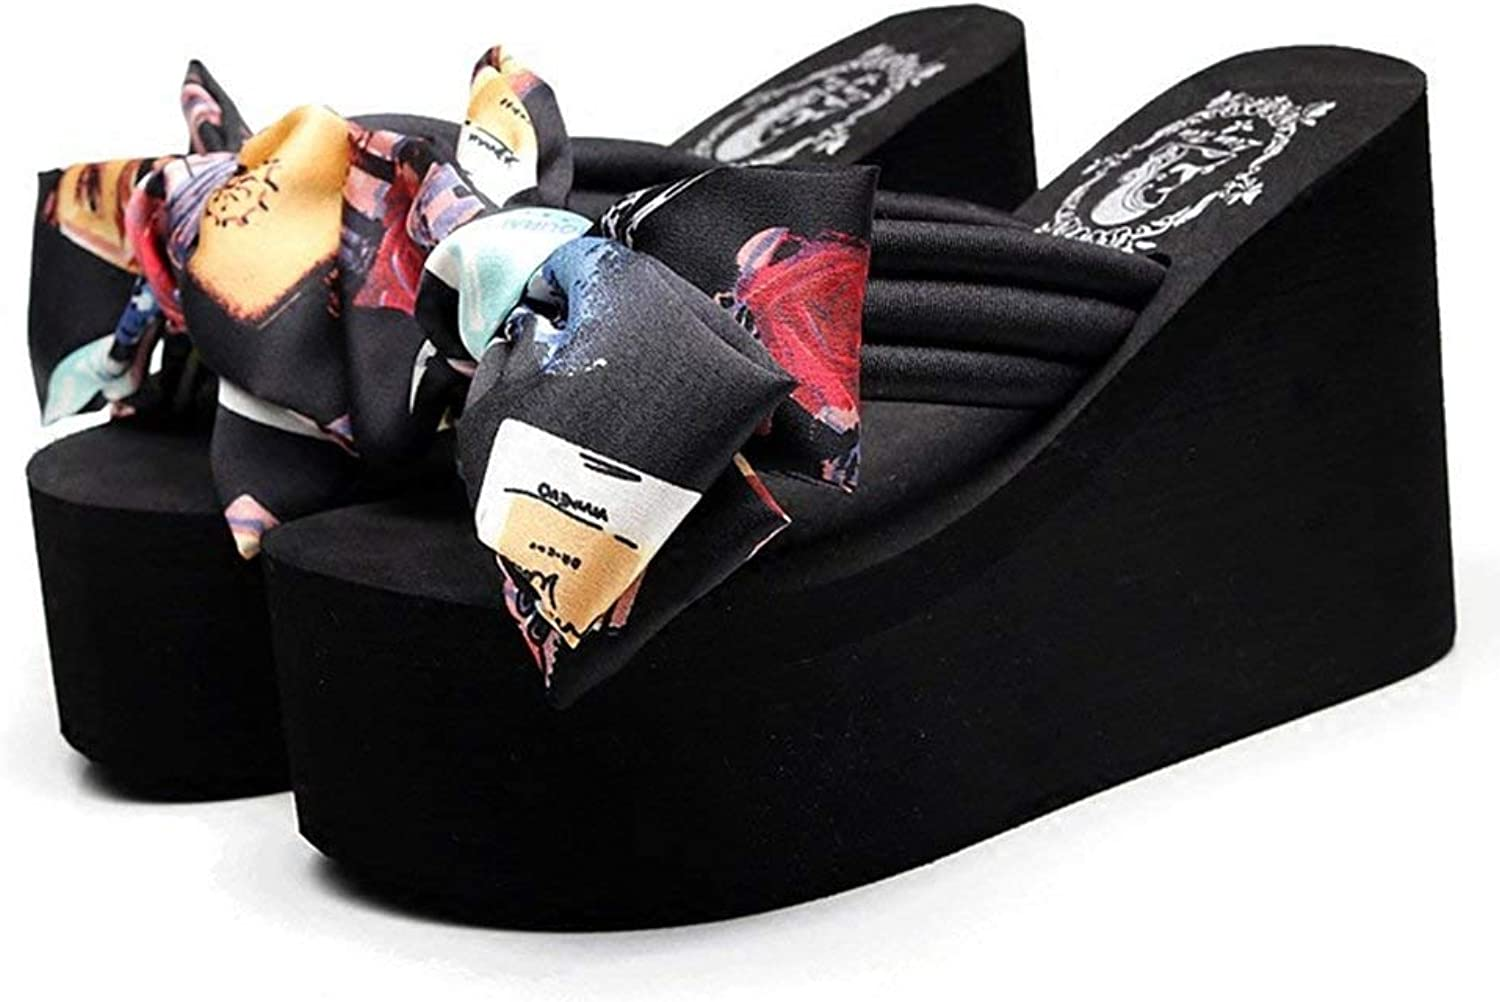 Wallhewb Womens Ladies Girls Bow Tie Sandals Fashion Handmade Flower Wedge Flip Flops Non Skid Outdoor Slippers Reasing Girl Leg Length Girl Rubber Sole Leg Length Black 7 M US Slipper shoes